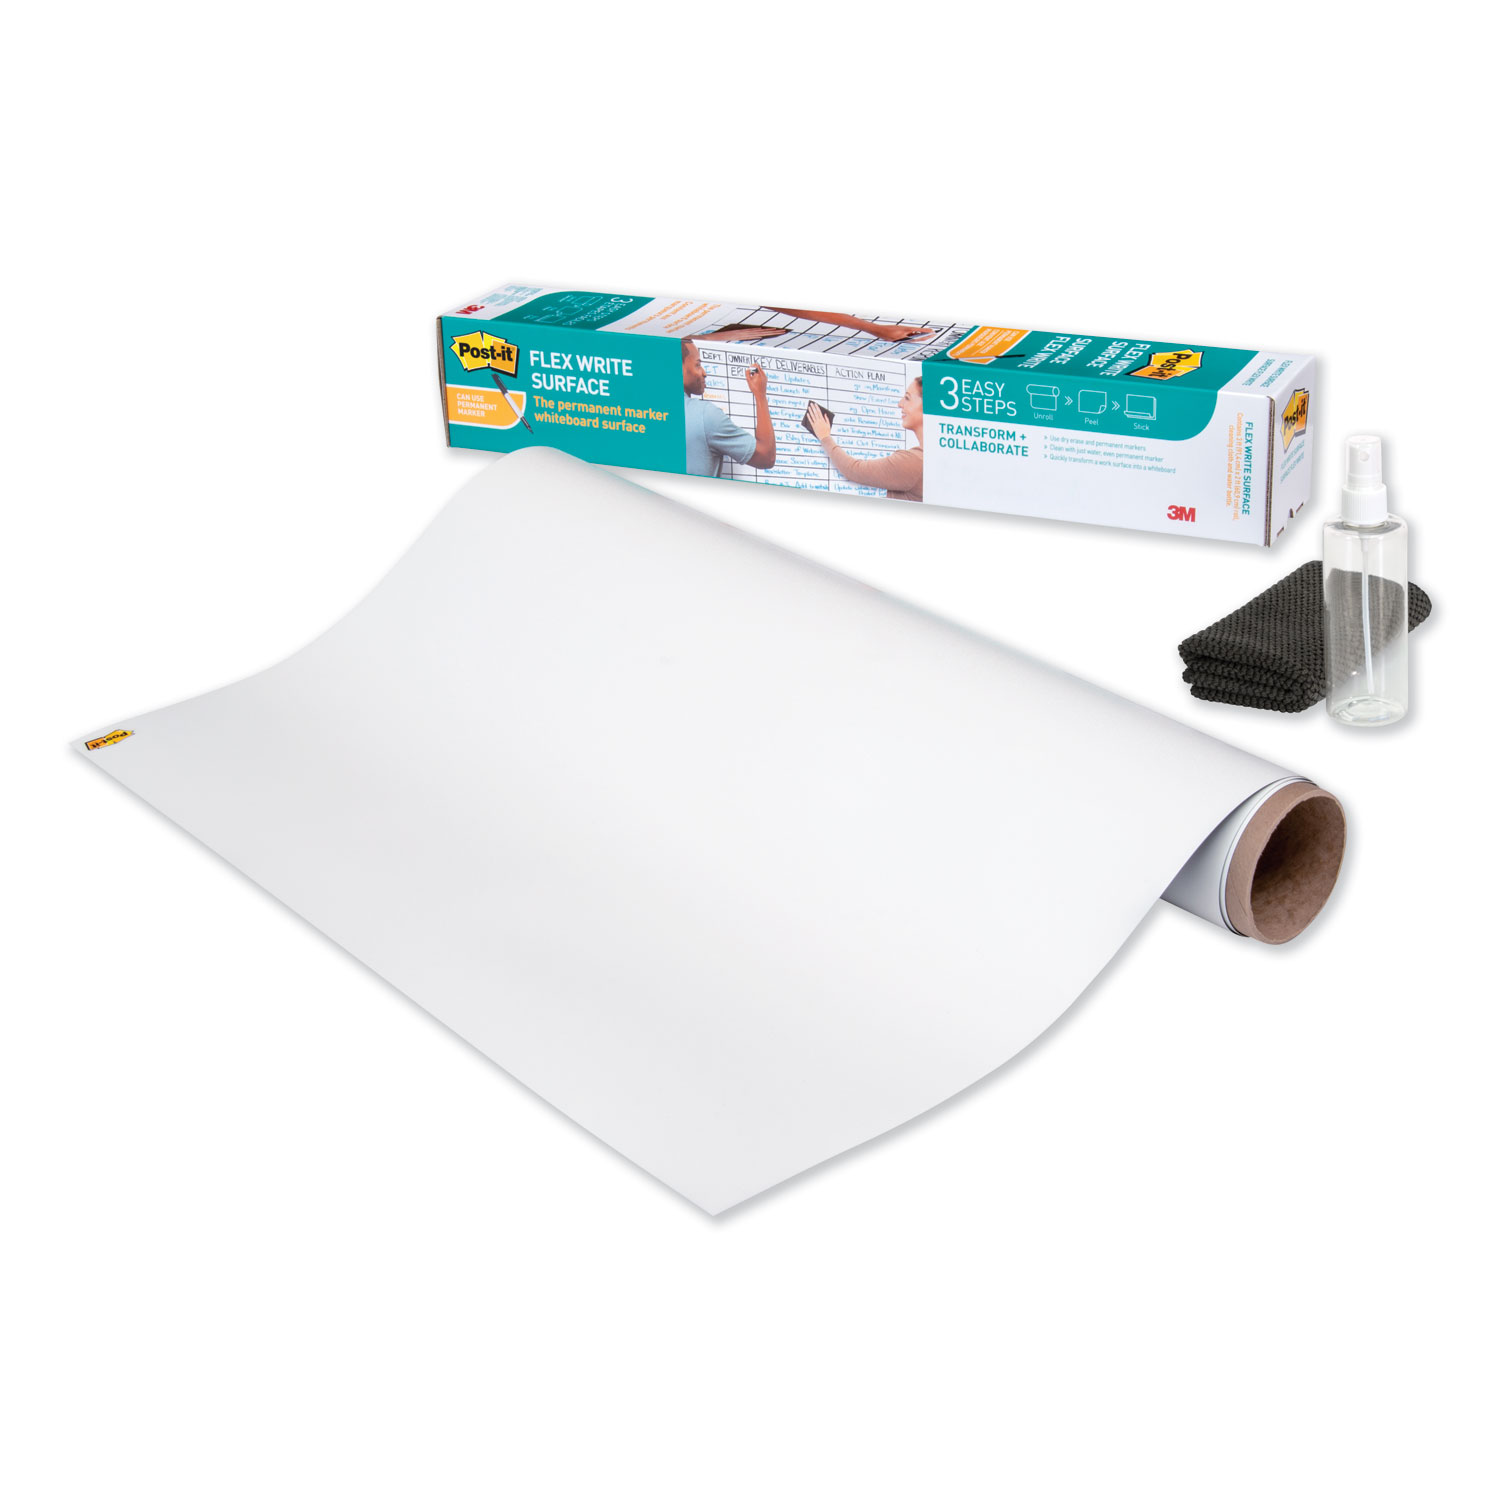 "Flex Write Surface, 50 ft x 48"", White"